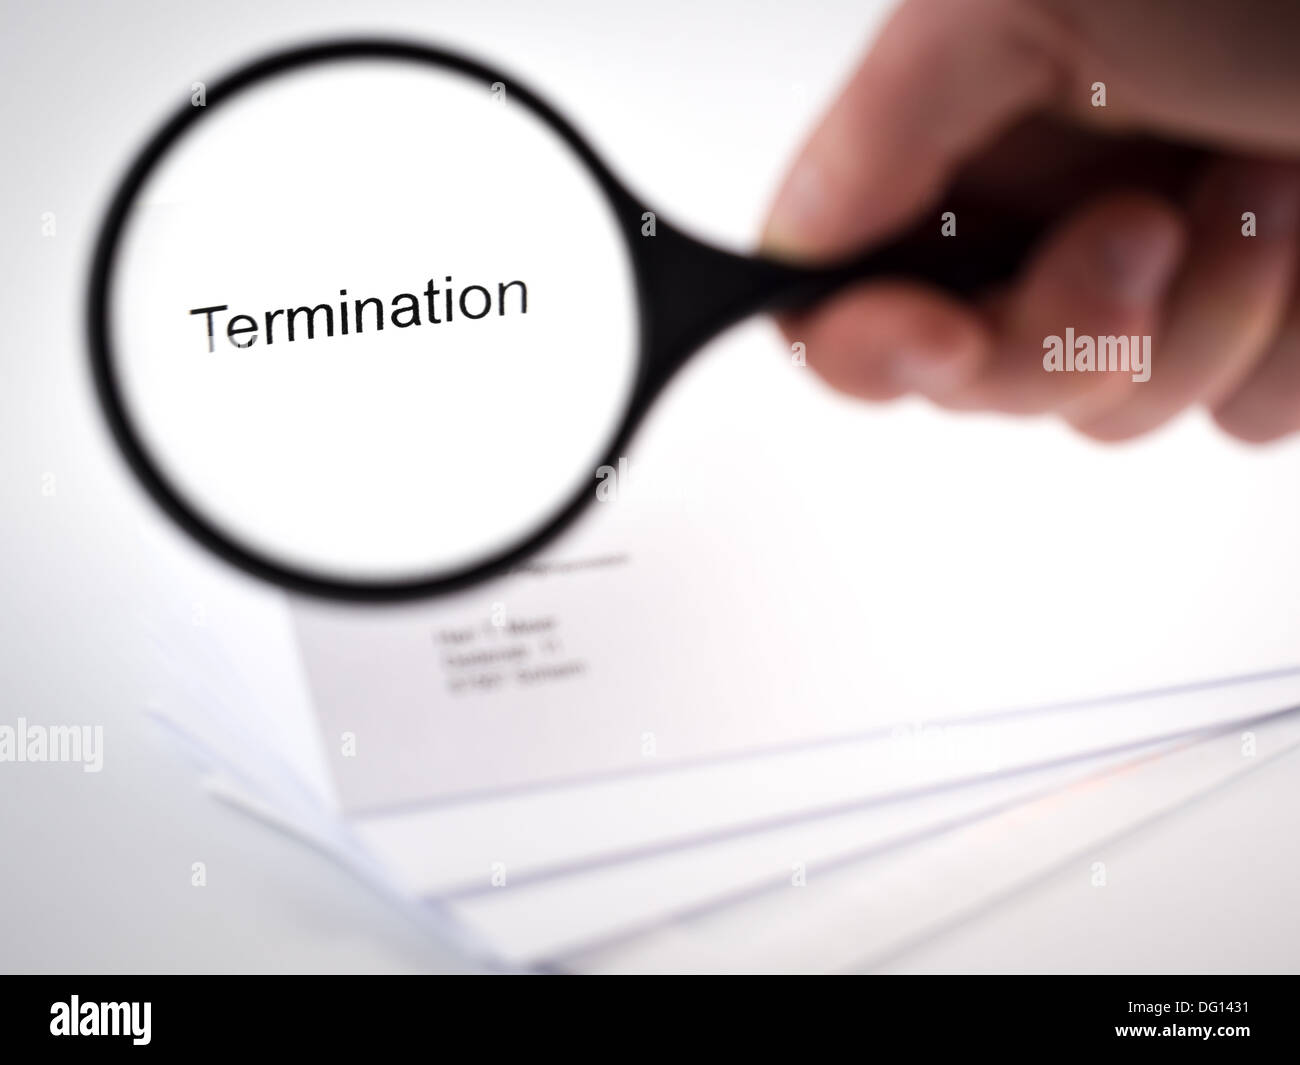 Cover letter with the word Termination in the letterhead - Stock Image